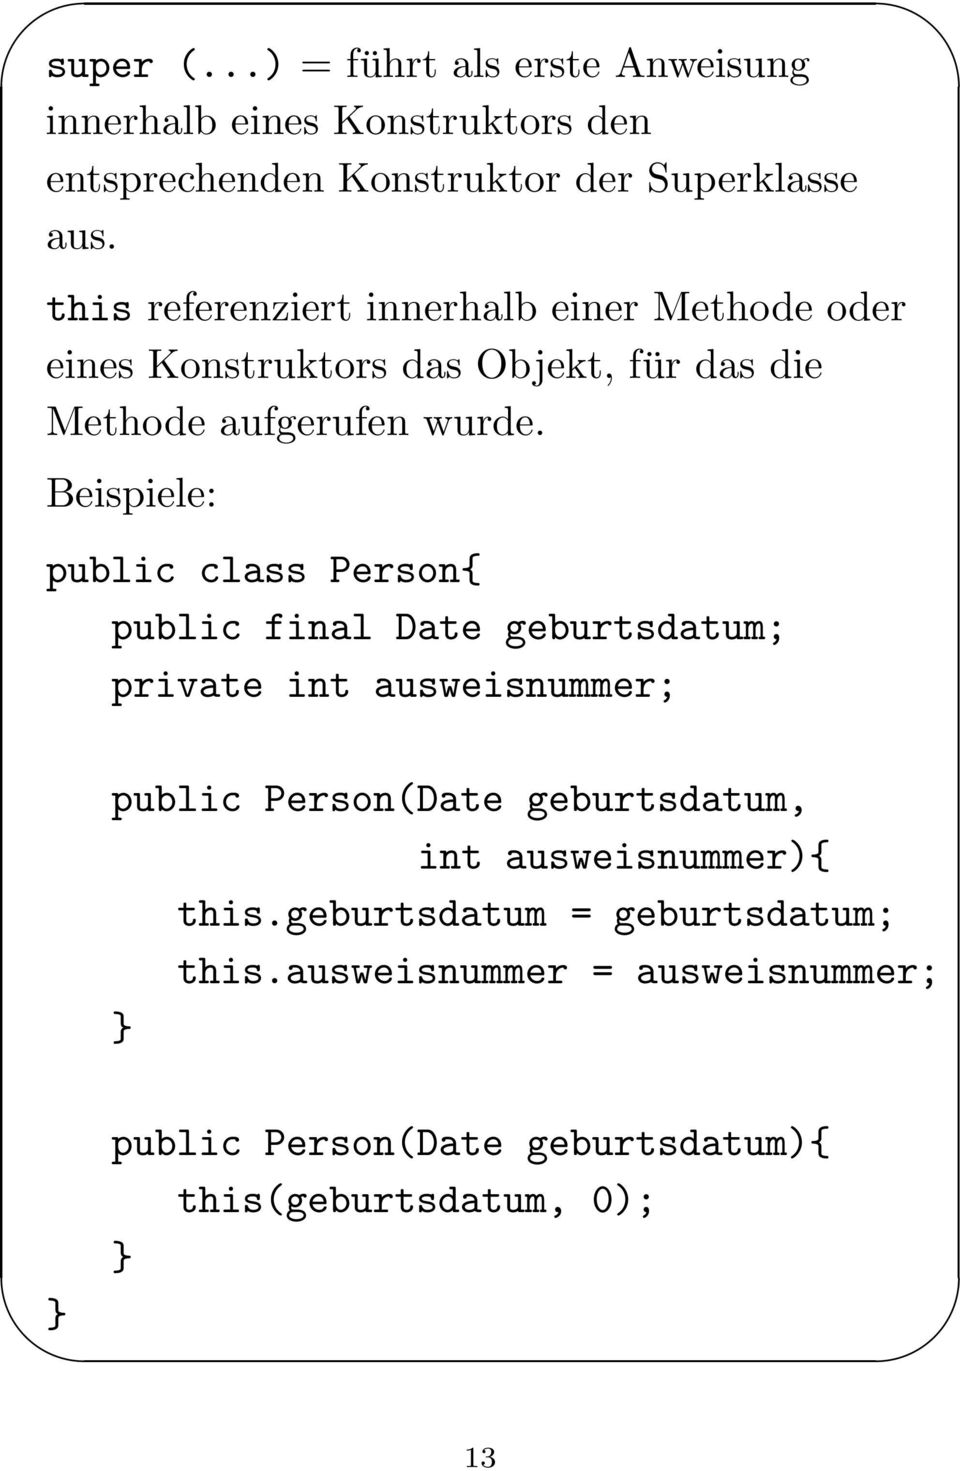 Beispiele: public class Person{ public final Date geburtsdatum; private int ausweisnummer; public Person(Date geburtsdatum, int